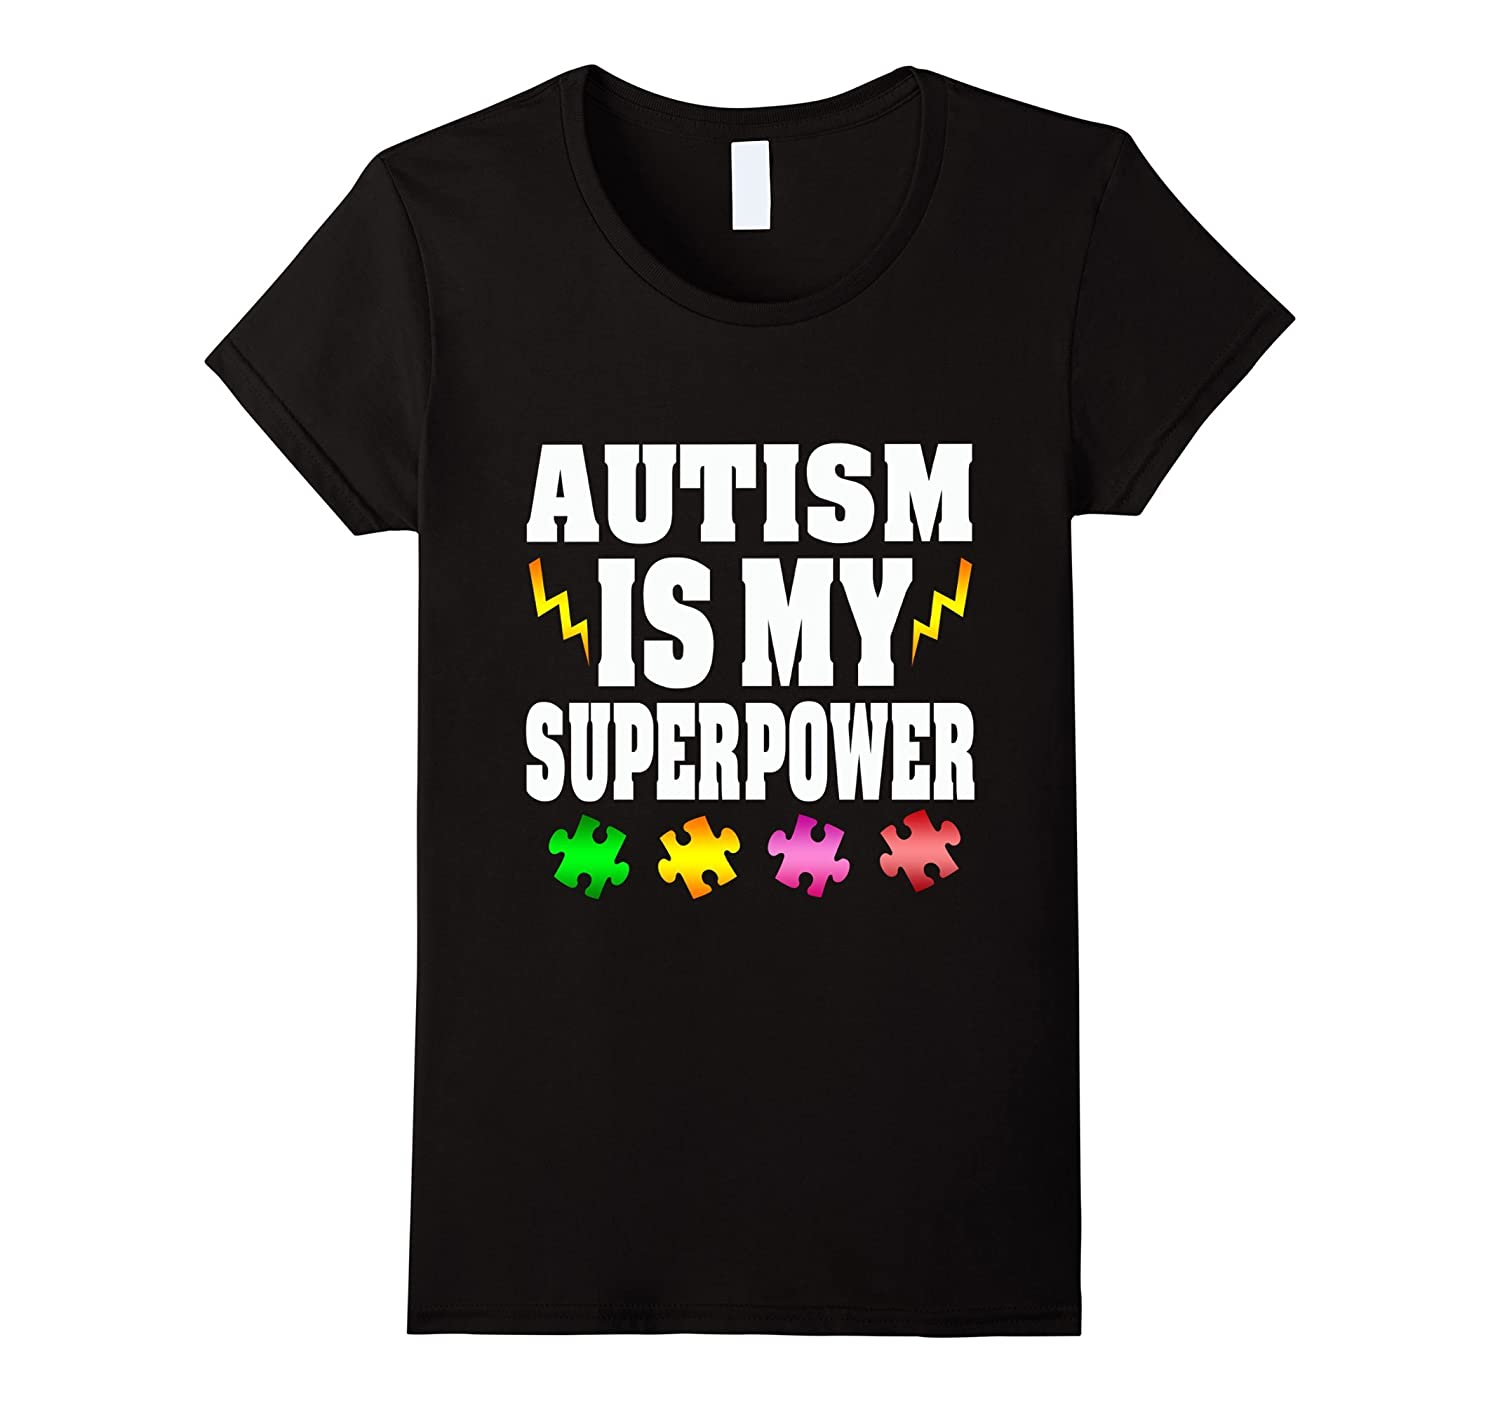 Autism Is My Superpower Shirt